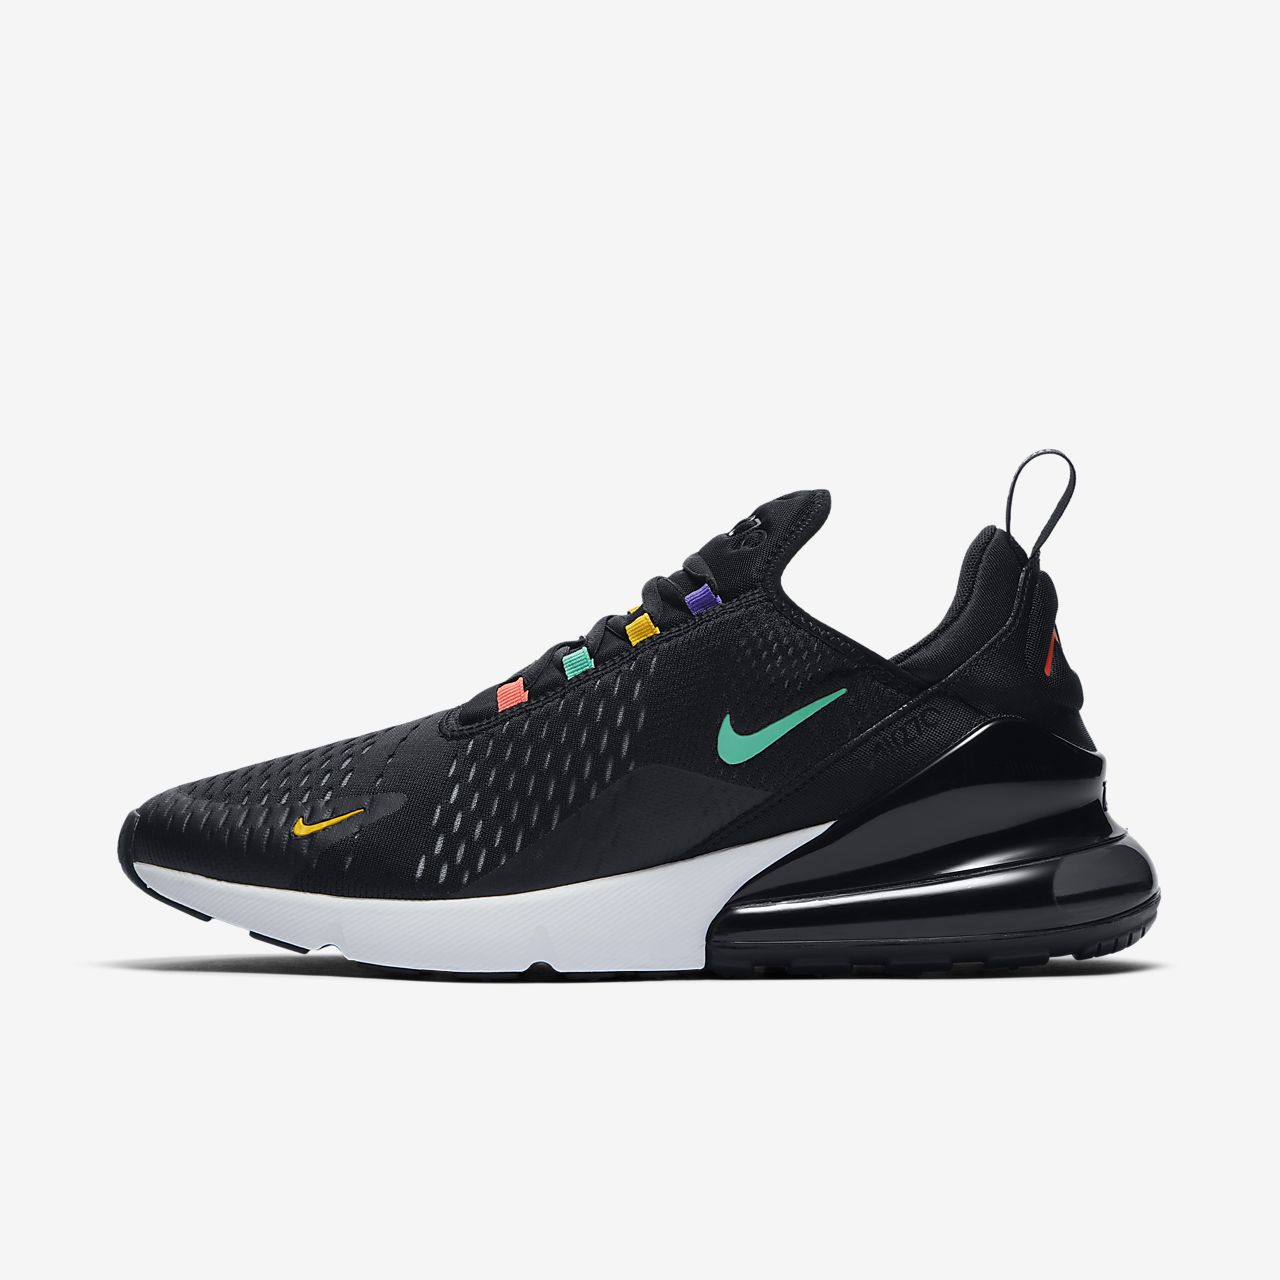 the best attitude 85dc7 5c177 Nike Air Max 270 Men's Shoe